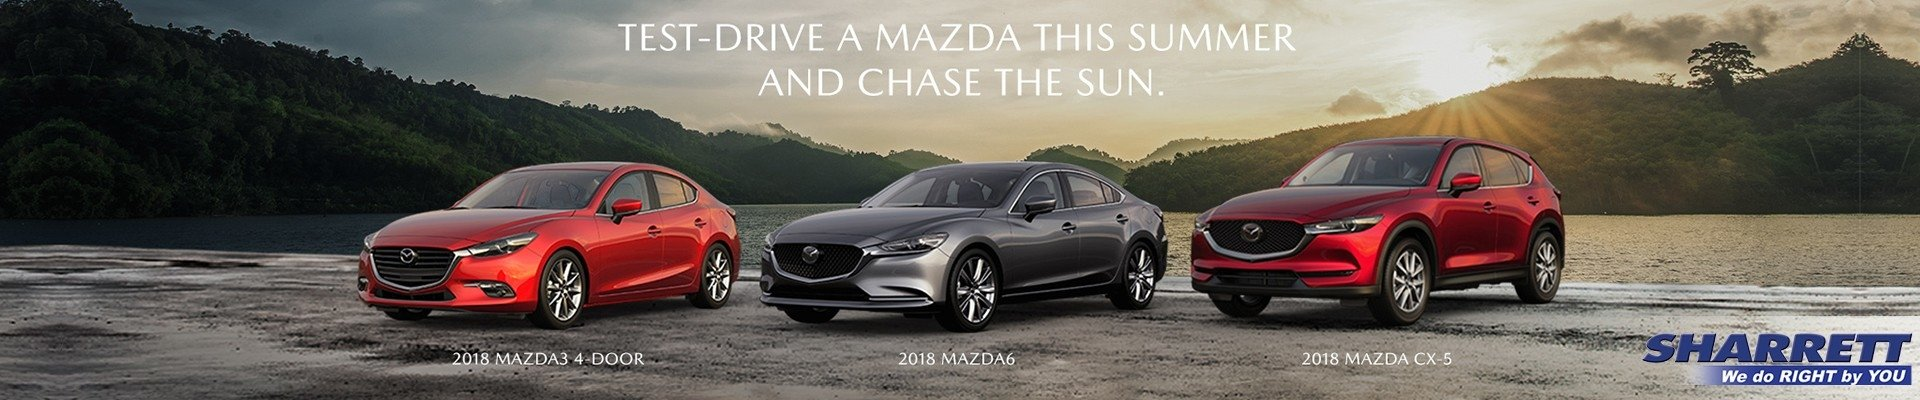 Test drive a Mazda today at Sharrett Mazda